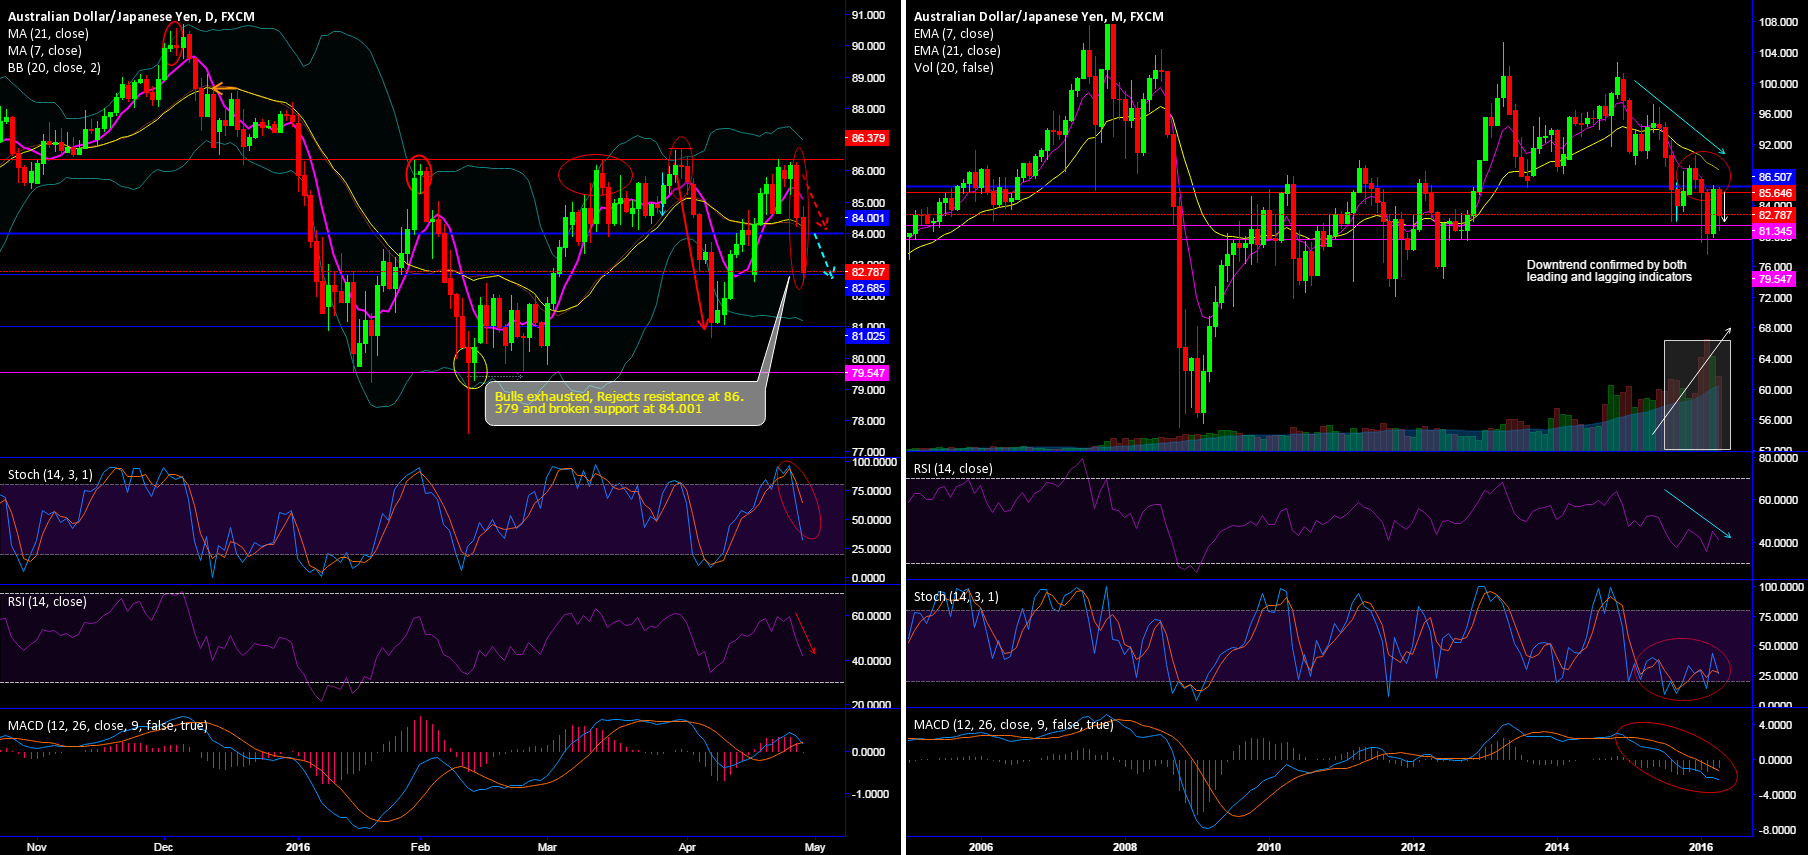 AUD/JPY just 2 trading days enough to wipe off 2 weeks of gains